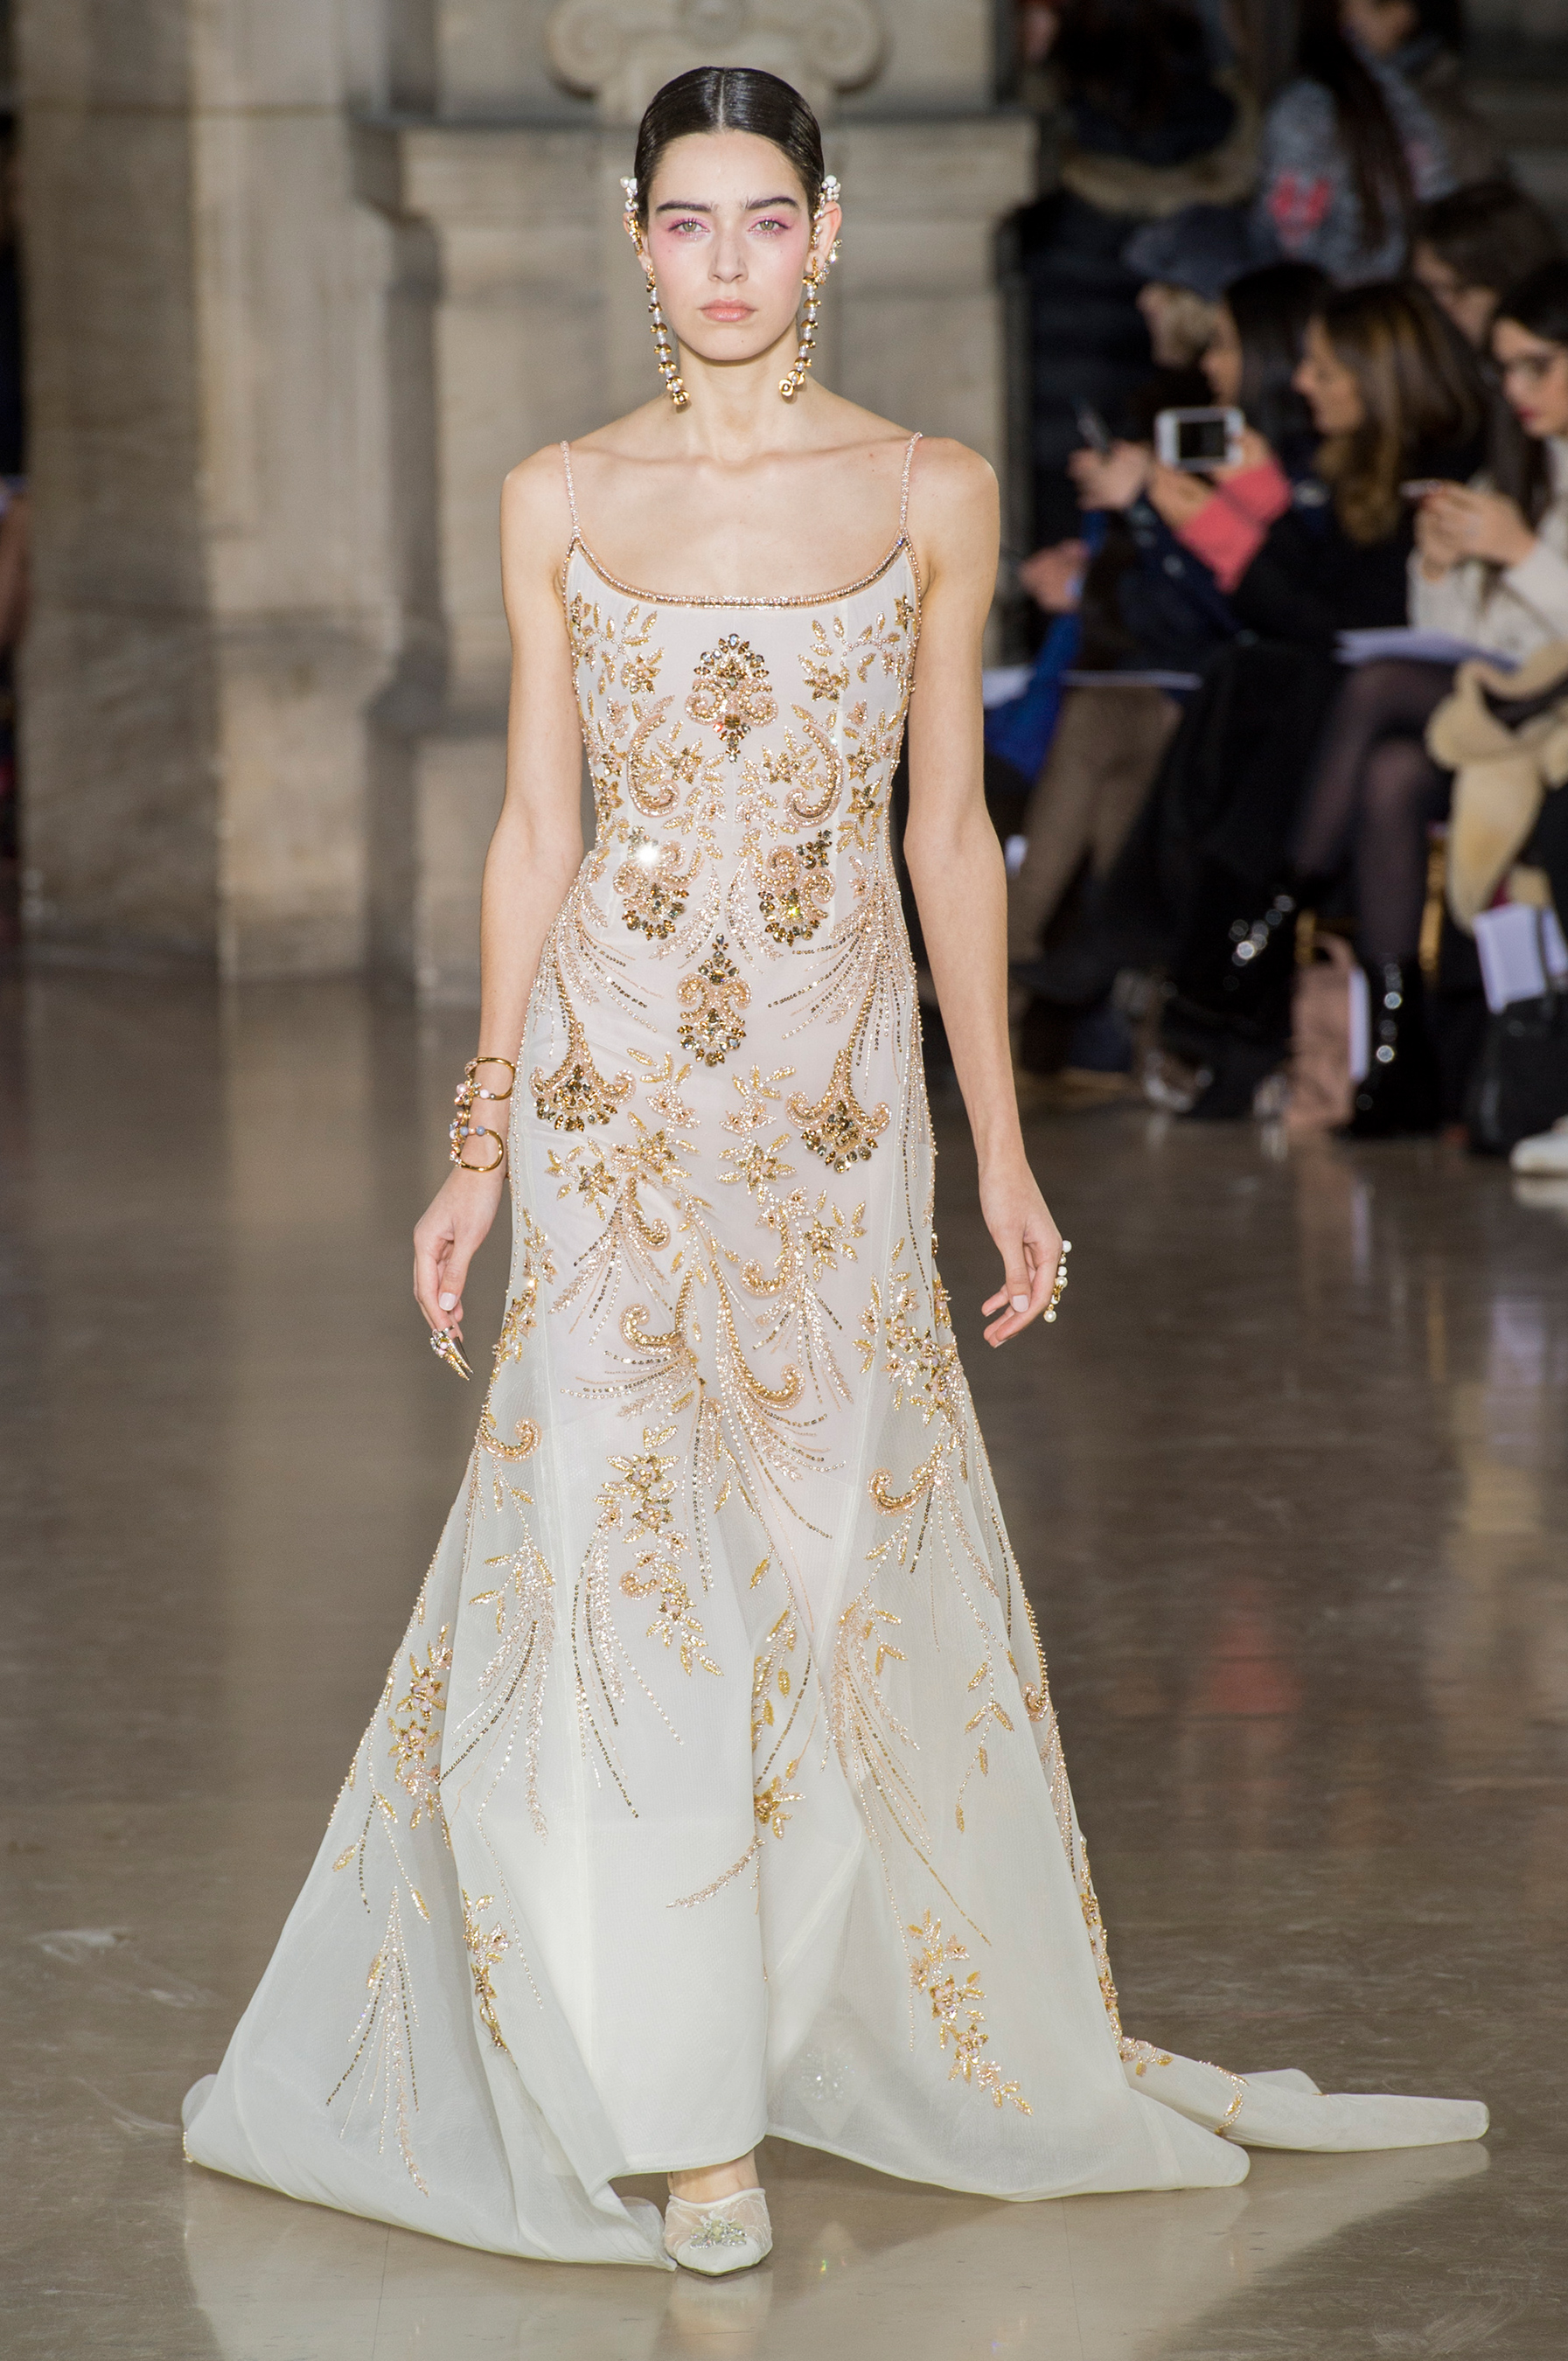 2017 05 fashion jersey dress - Georges Hobeika Spring 2017 Couture Fashion Show